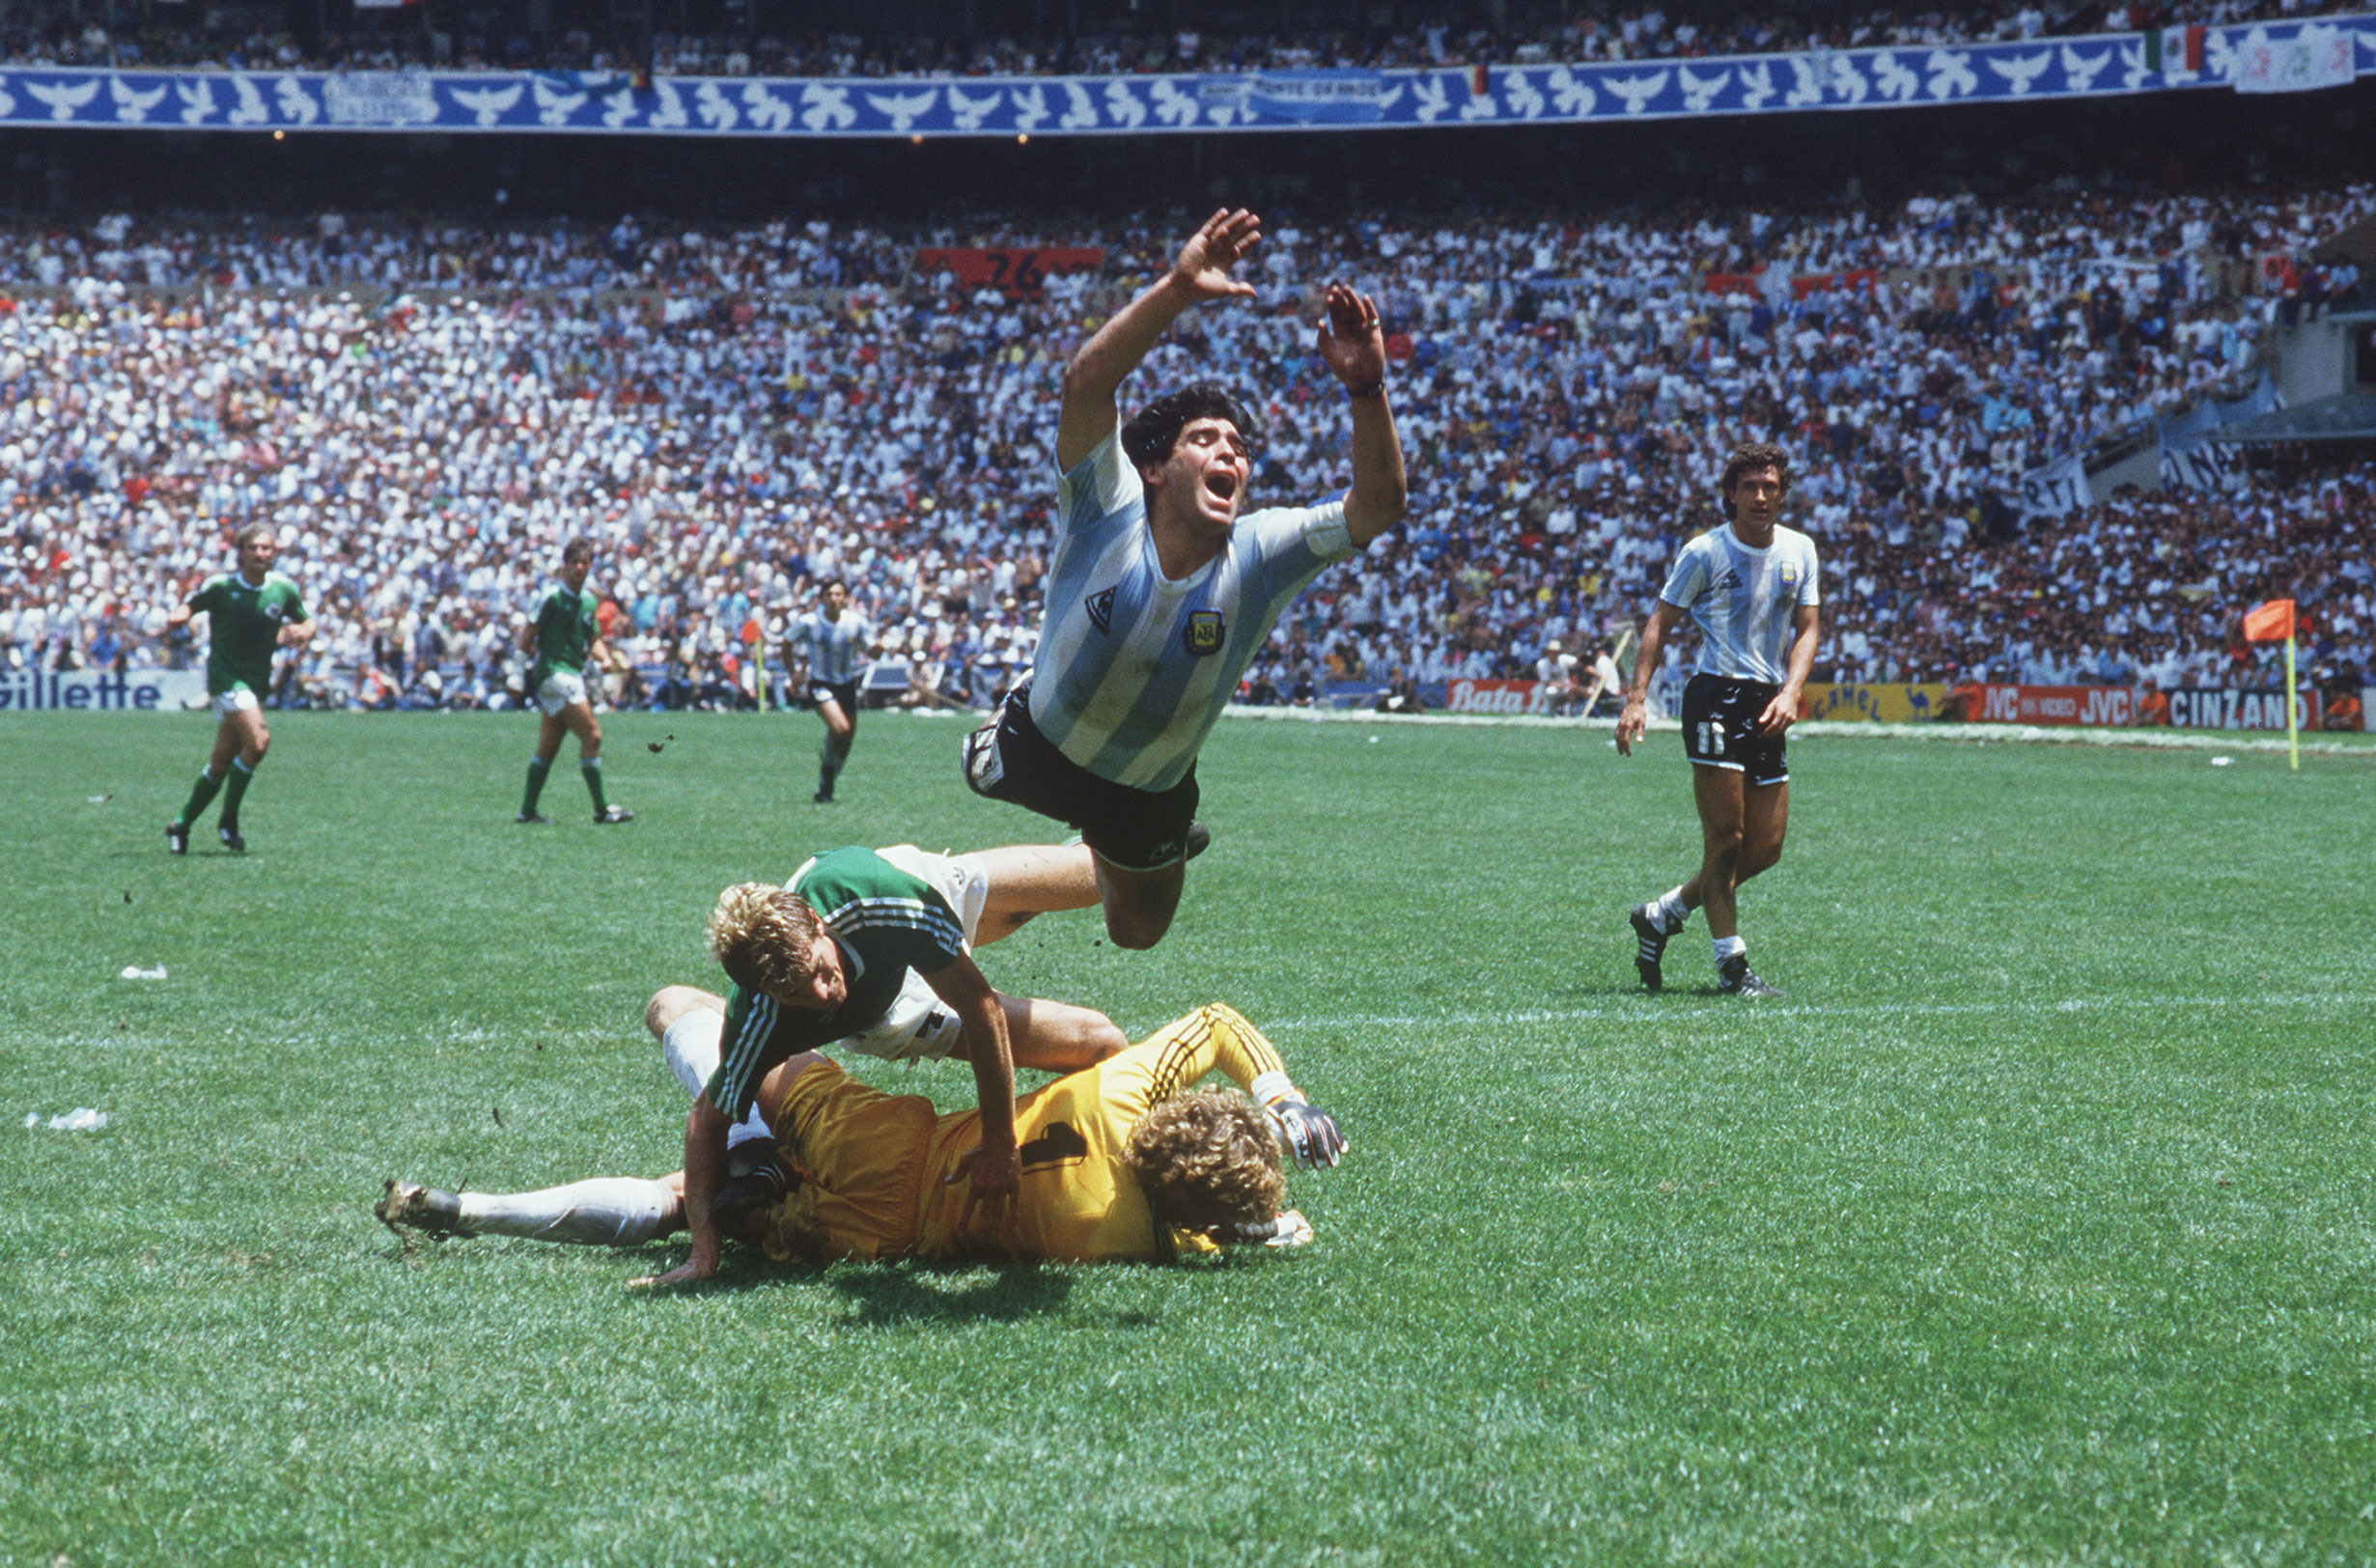 Fool or hero? Maradona movie shows why he was like no other